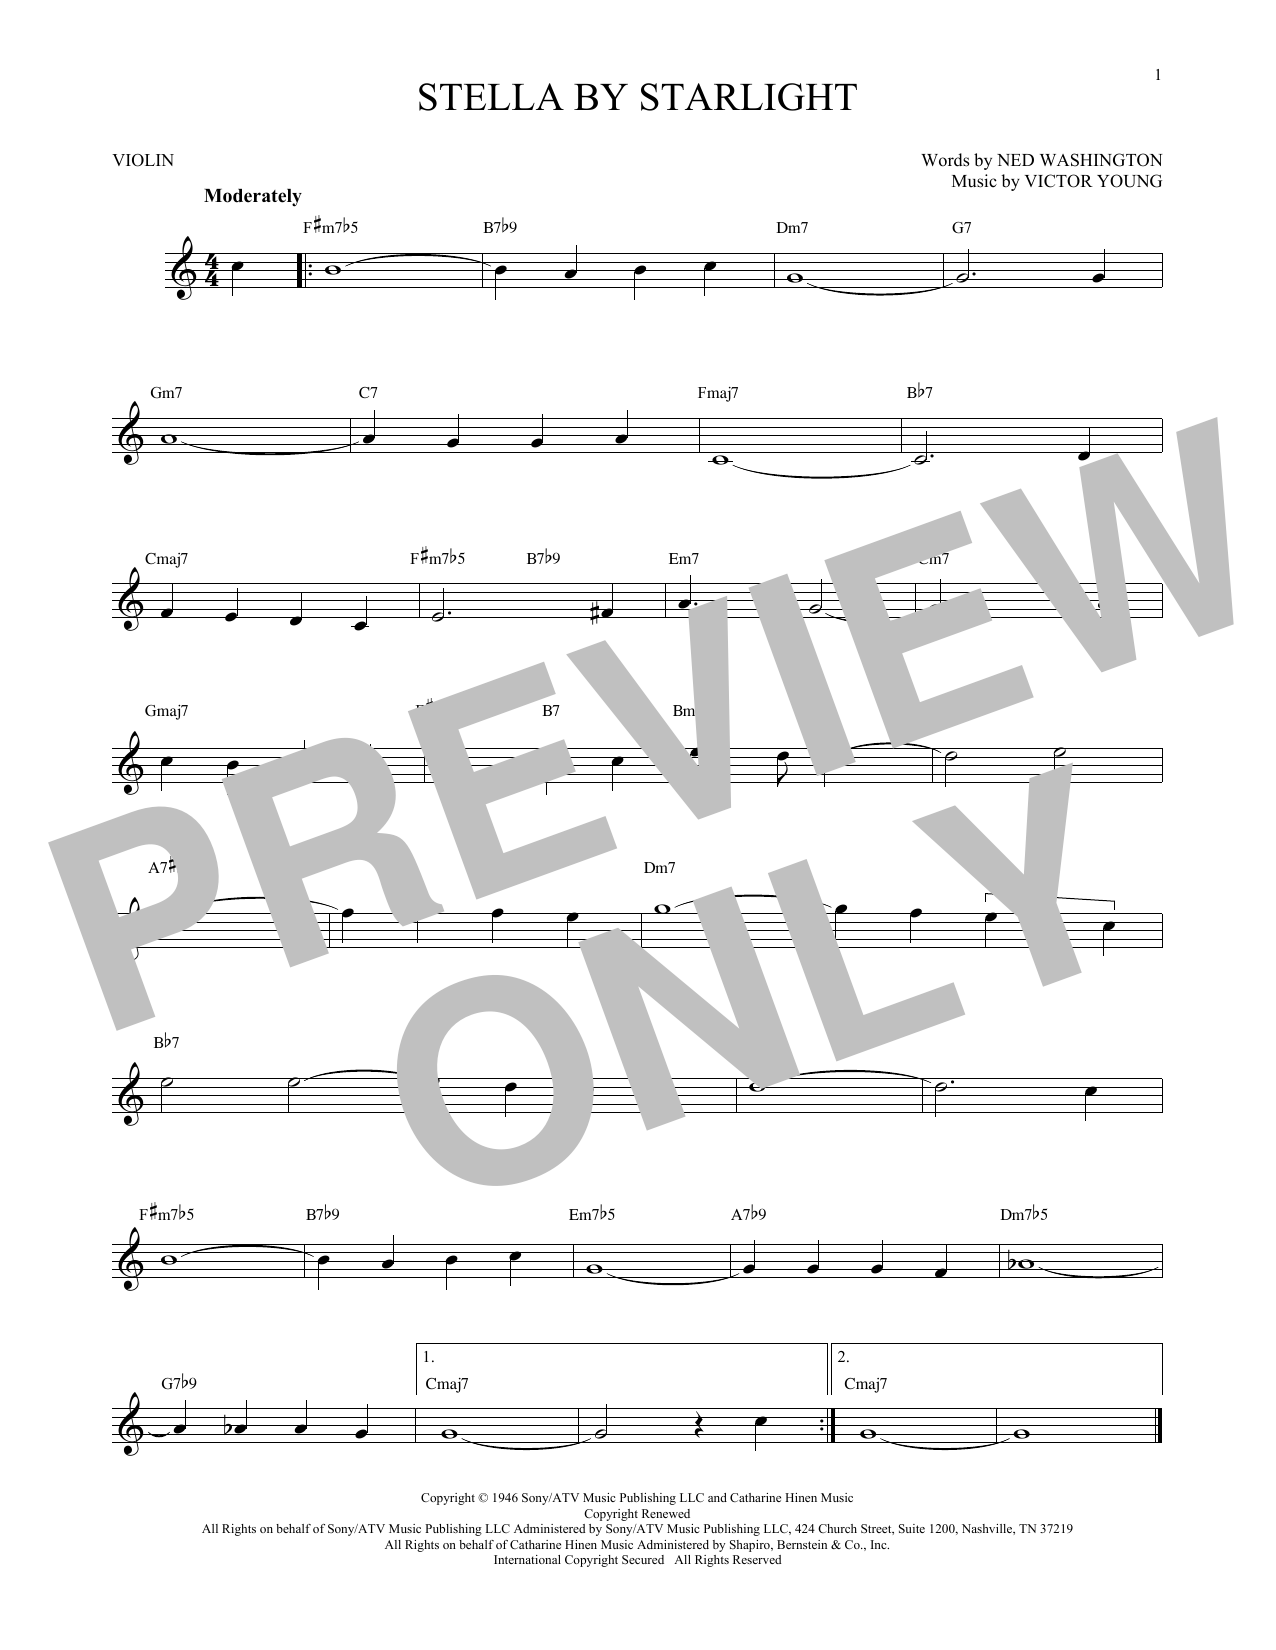 Ned Washington Stella By Starlight sheet music notes and chords. Download Printable PDF.